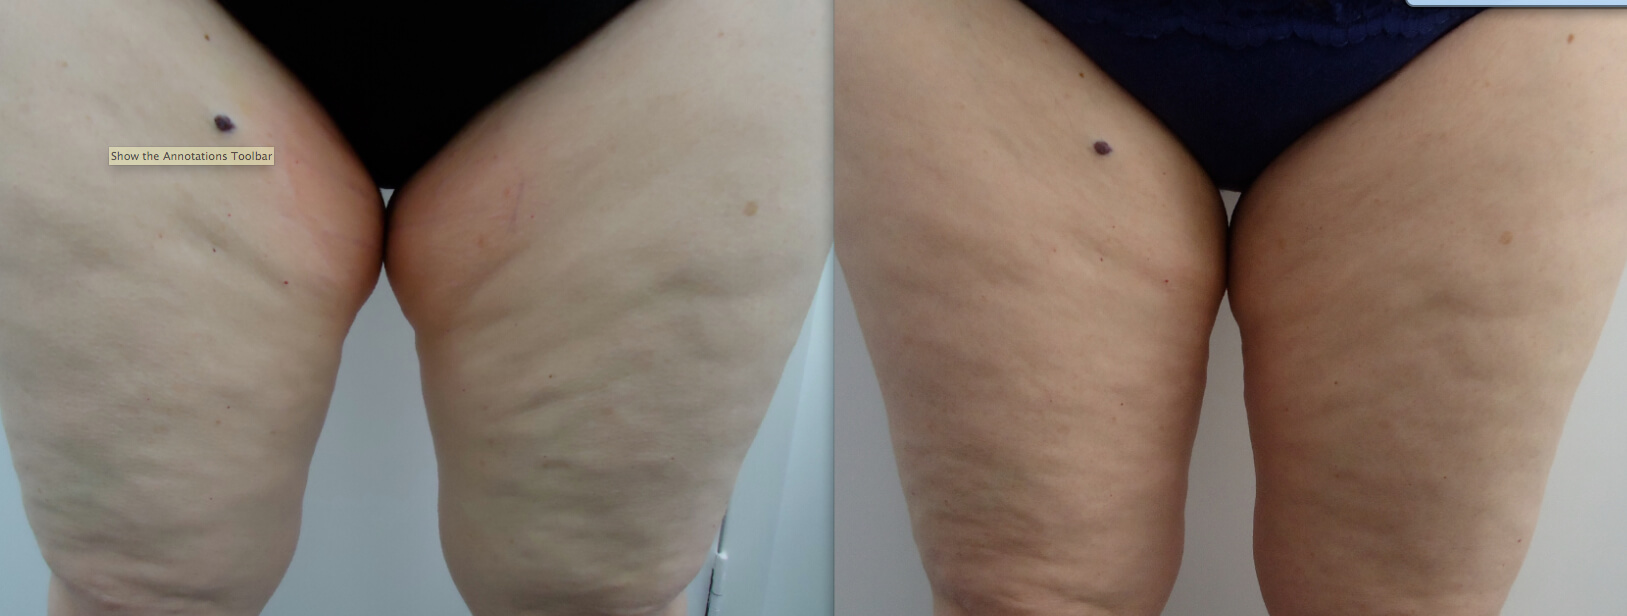 Permanent Fat Removal Fat Freezing Cryolipolysis